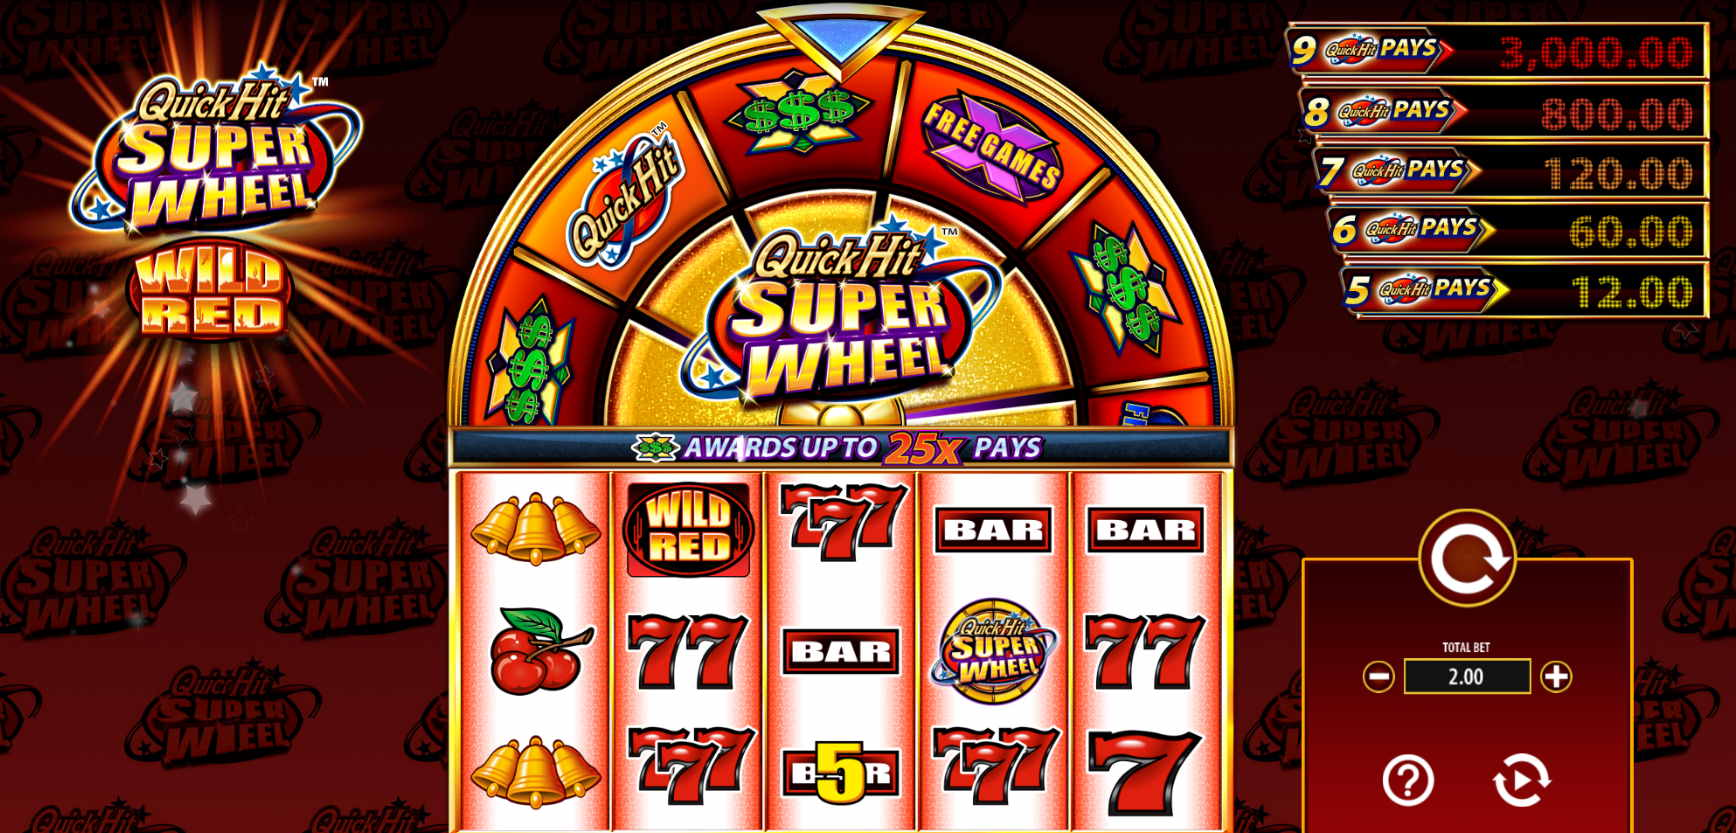 Spiele Quick Hit Super Wheel Wild Red - Video Slots Online